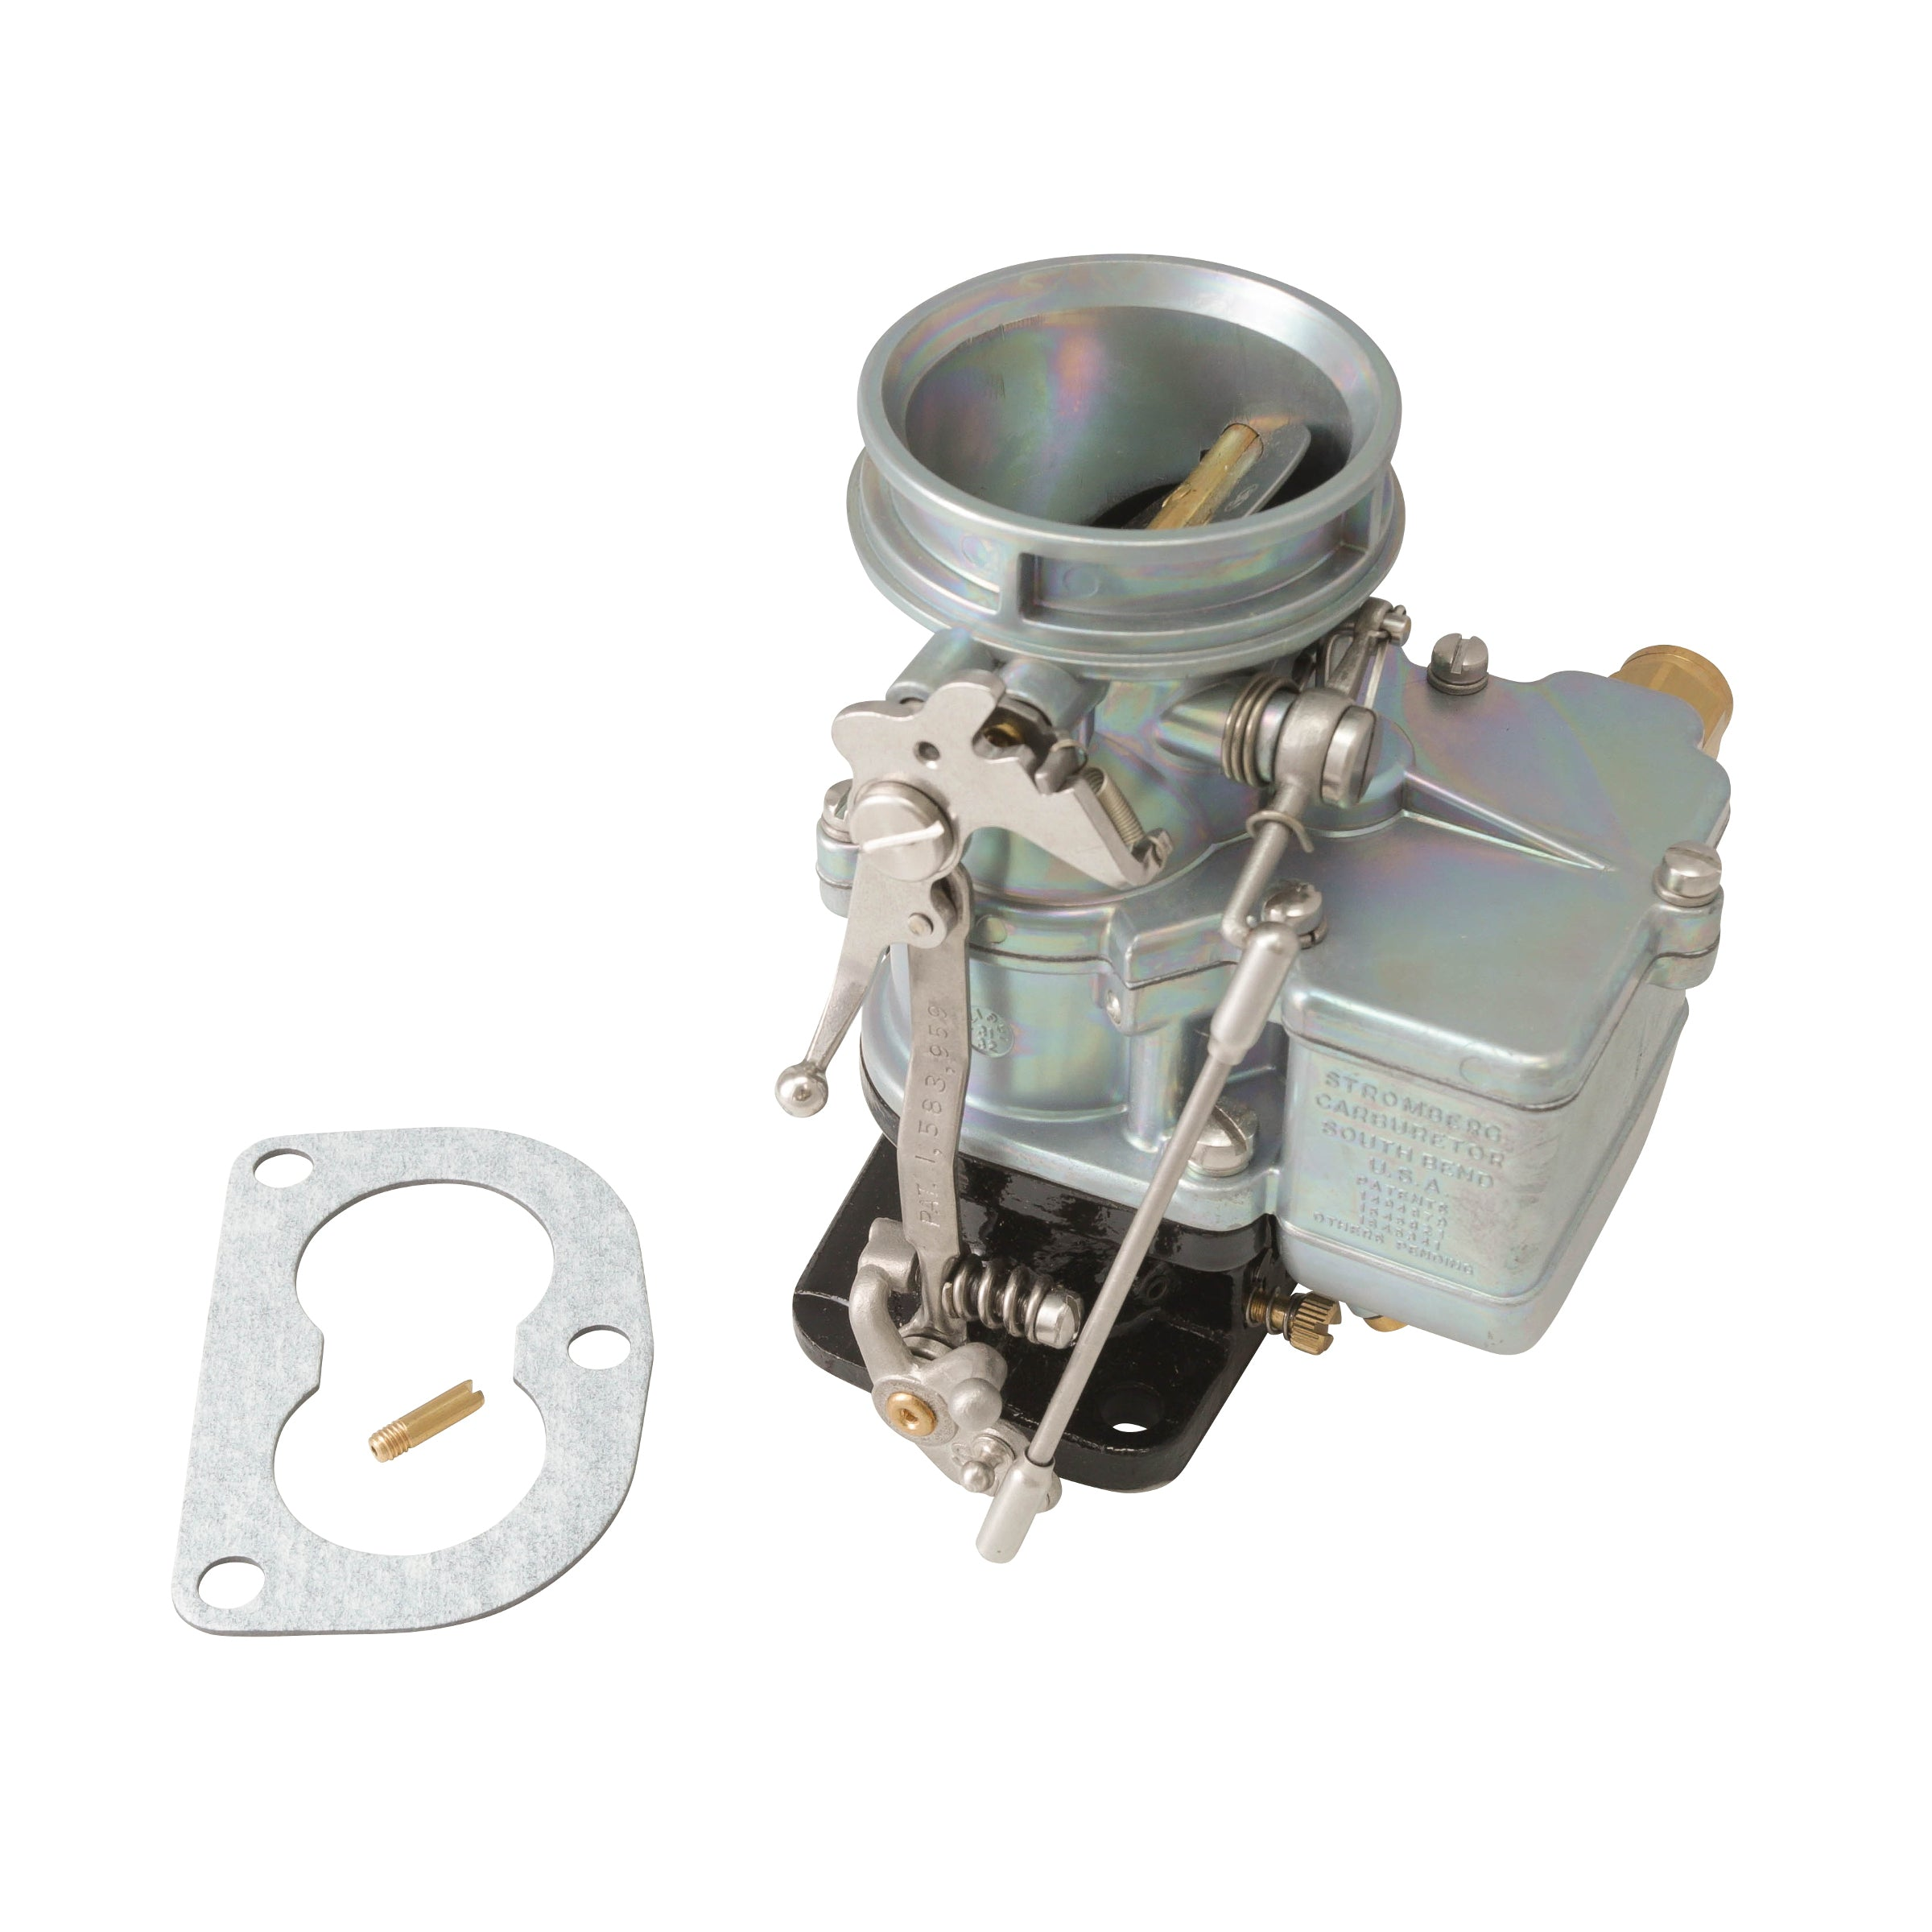 Genuine Stromberg 97 Carburetor • Chrome-Plated Body